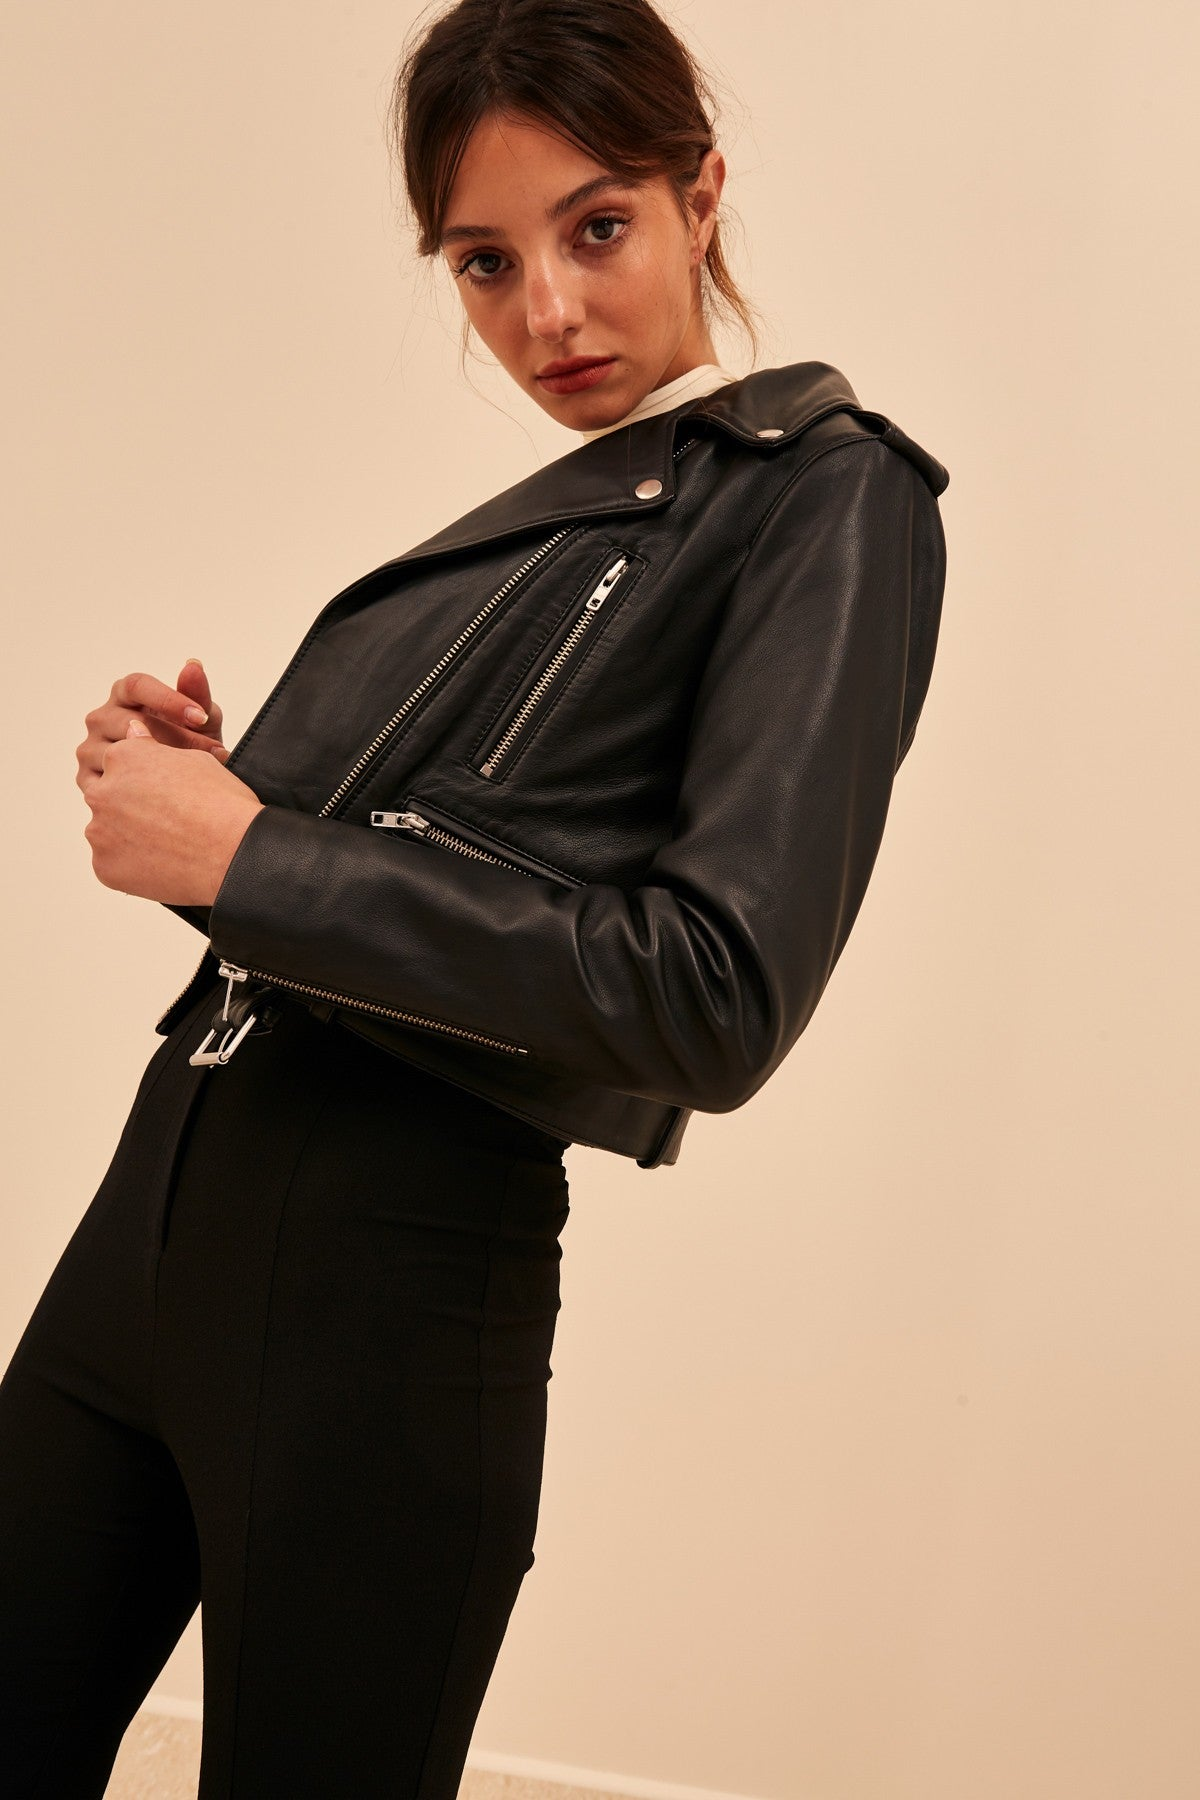 WHILE HERE LEATHER JACKET black